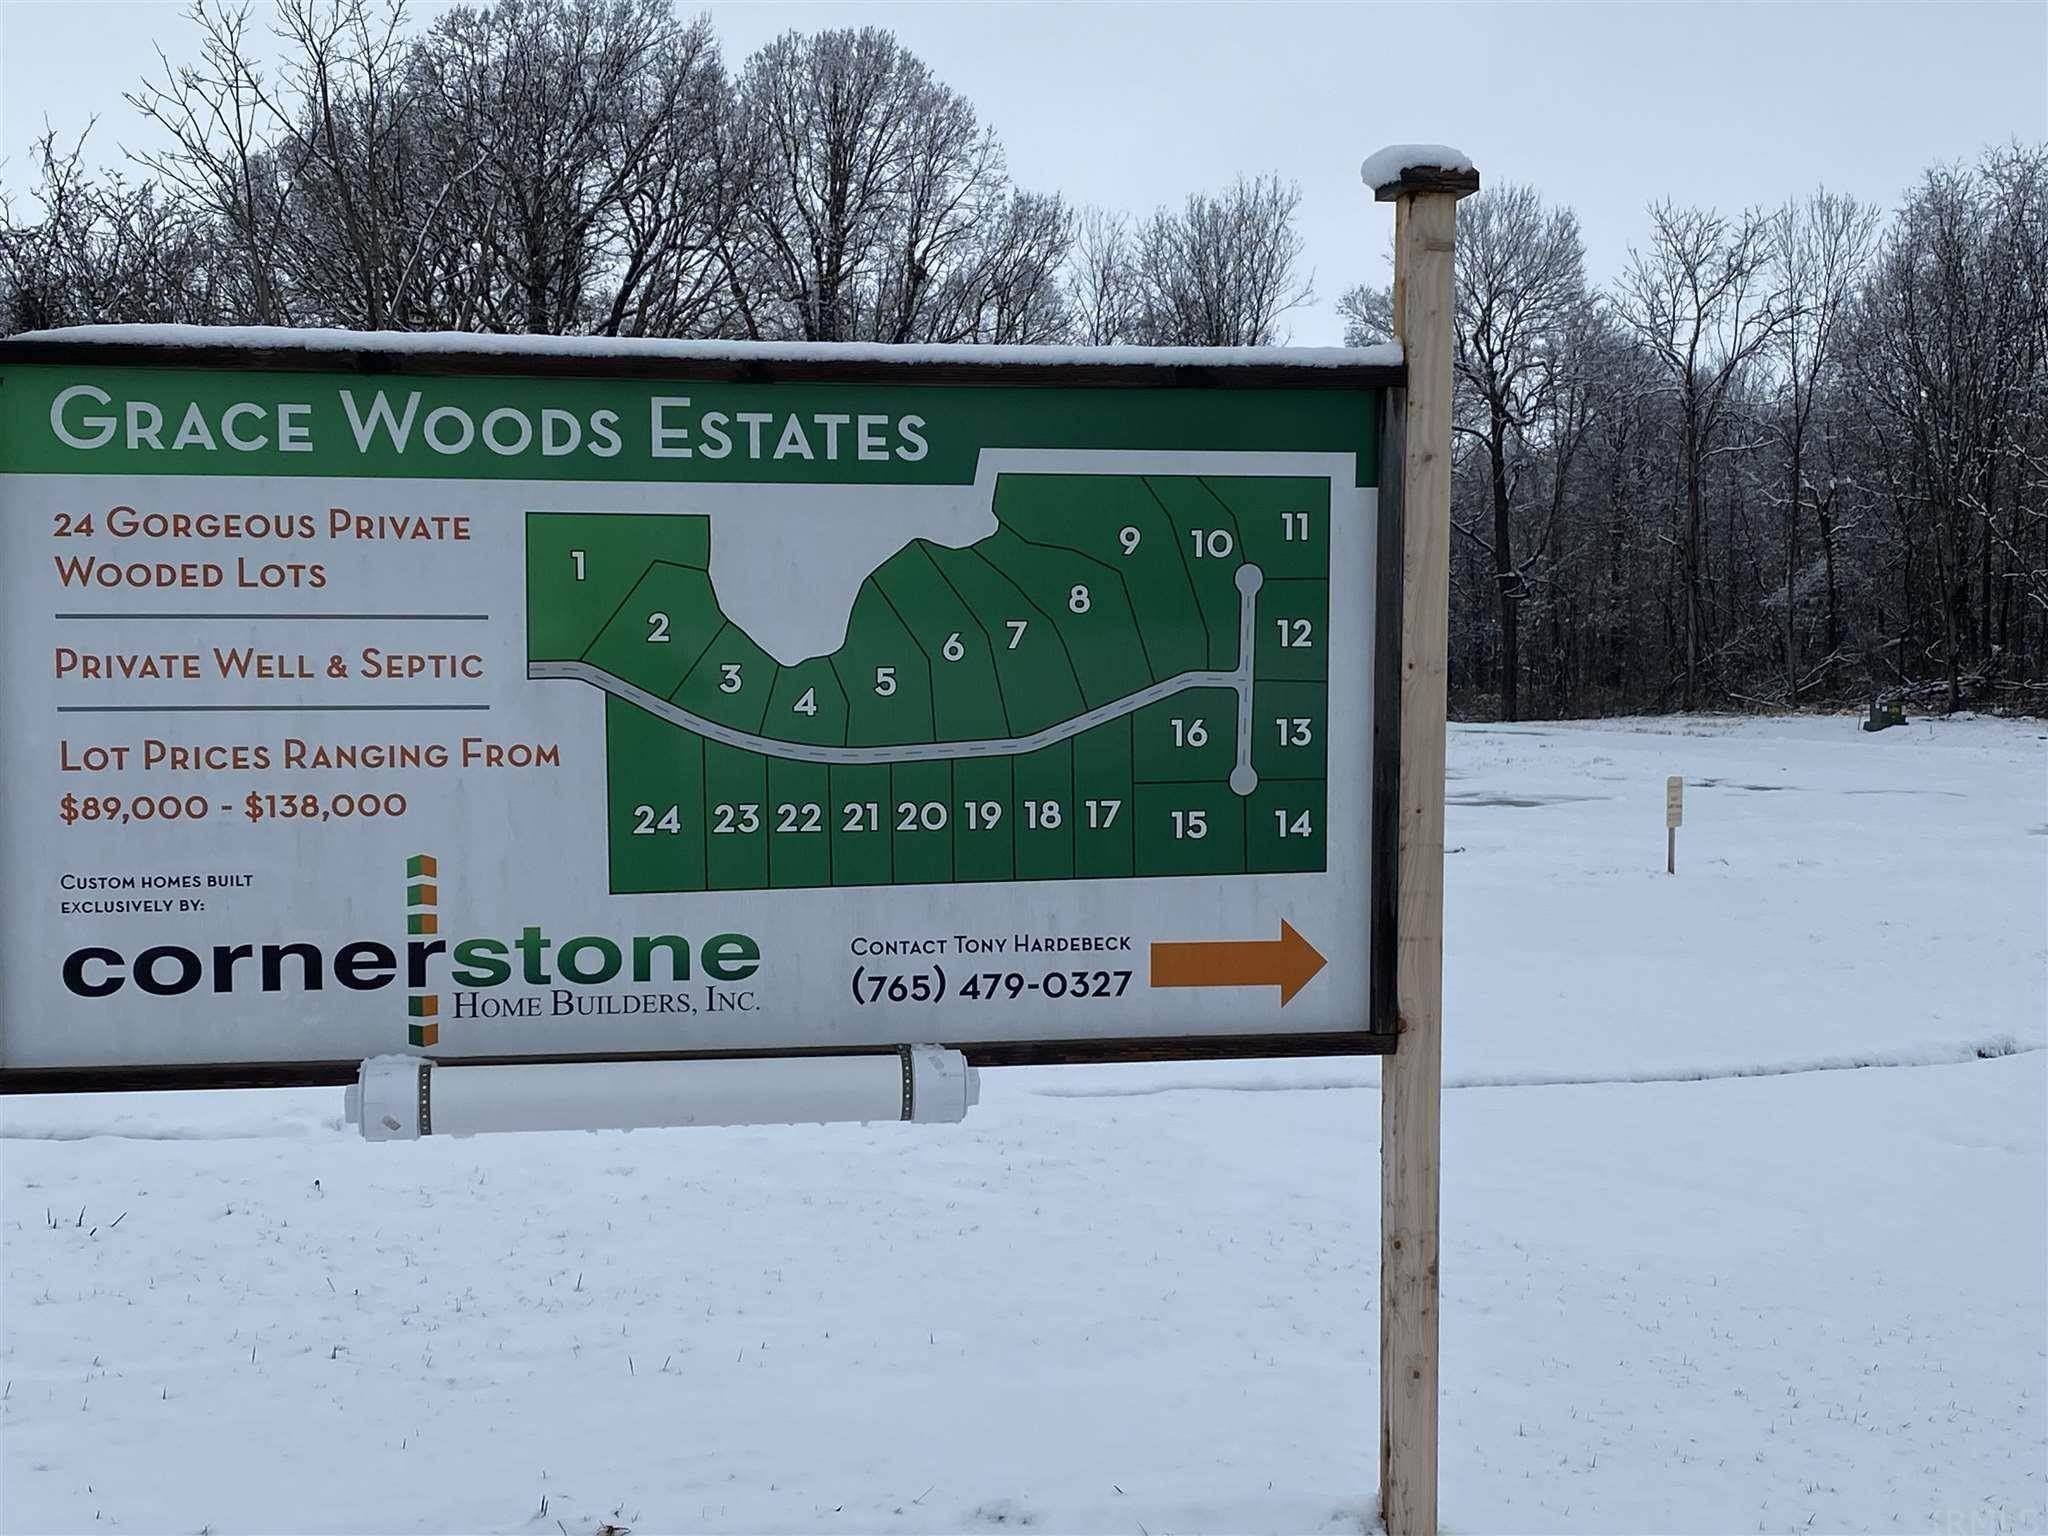 Residential Lots & Land for Sale at 9426 Herring Lane Battle Ground, Indiana 47920 United States